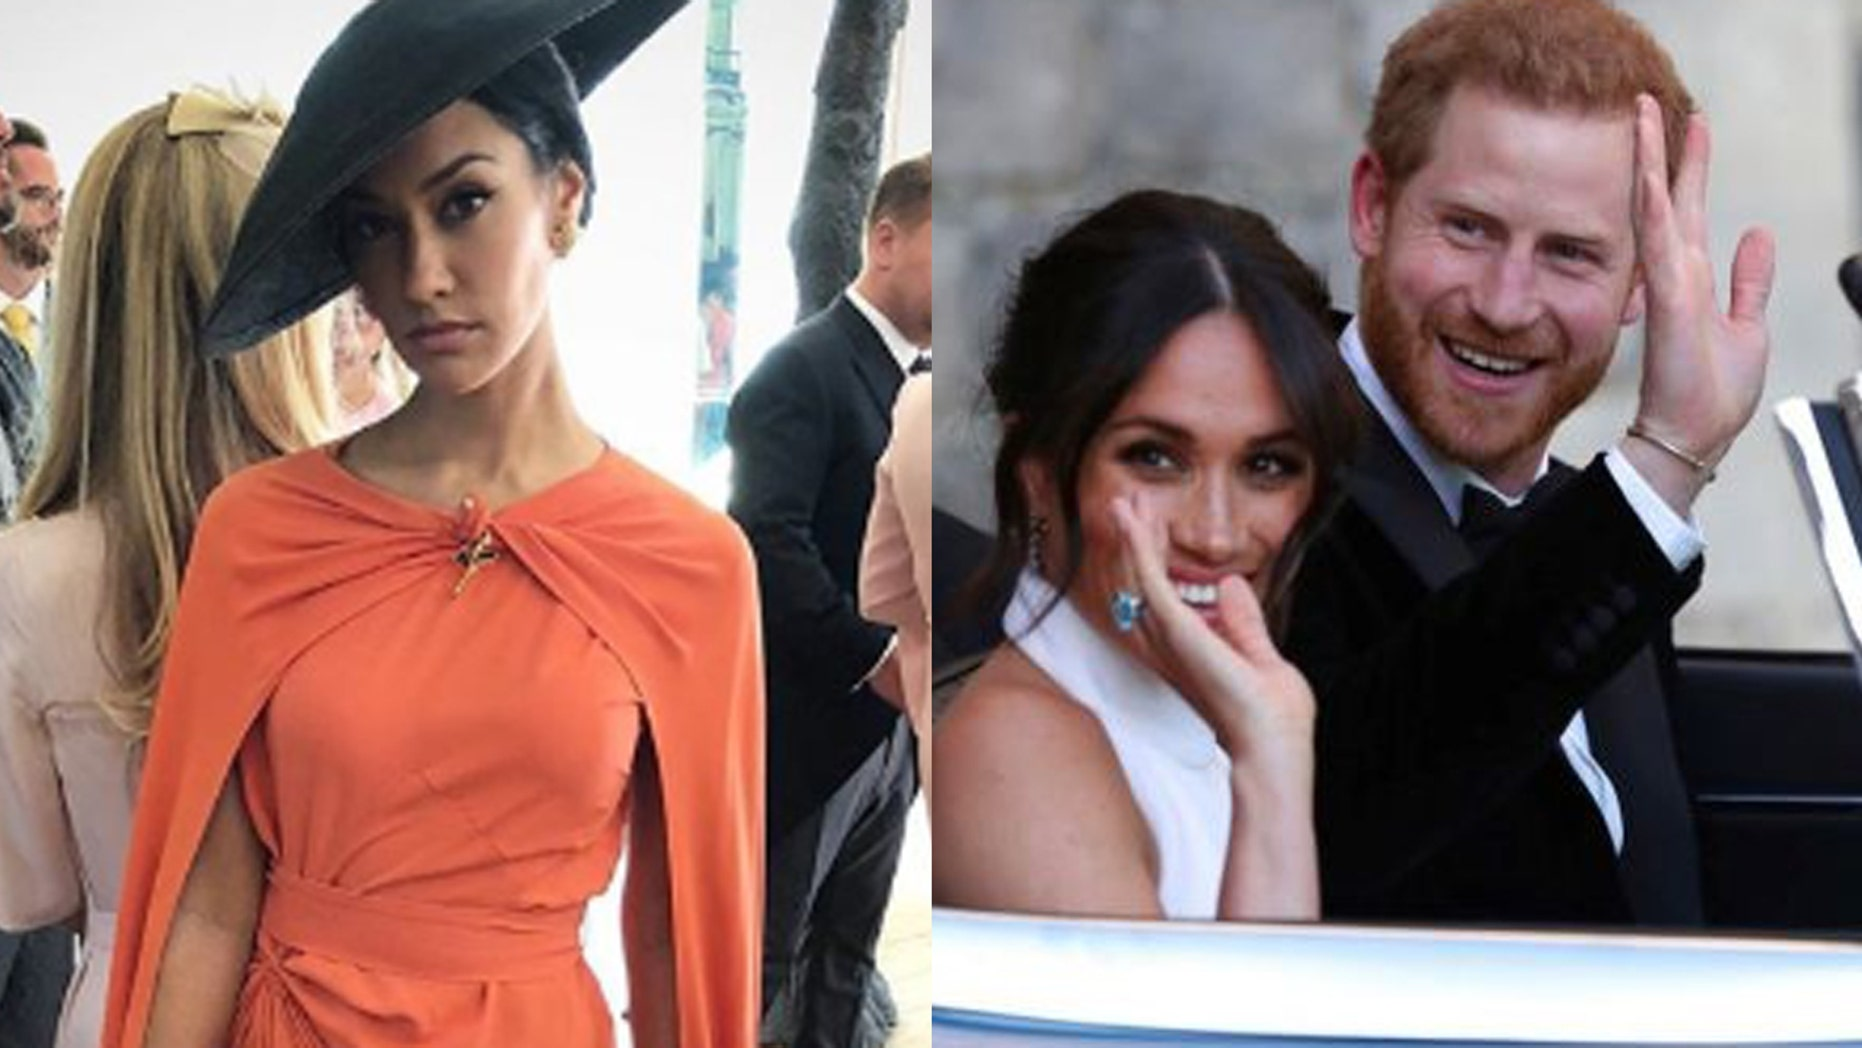 Actress Janina Gavankar reveals more details from inside Meghan Markle and Prince Harry's royal wedding reception.